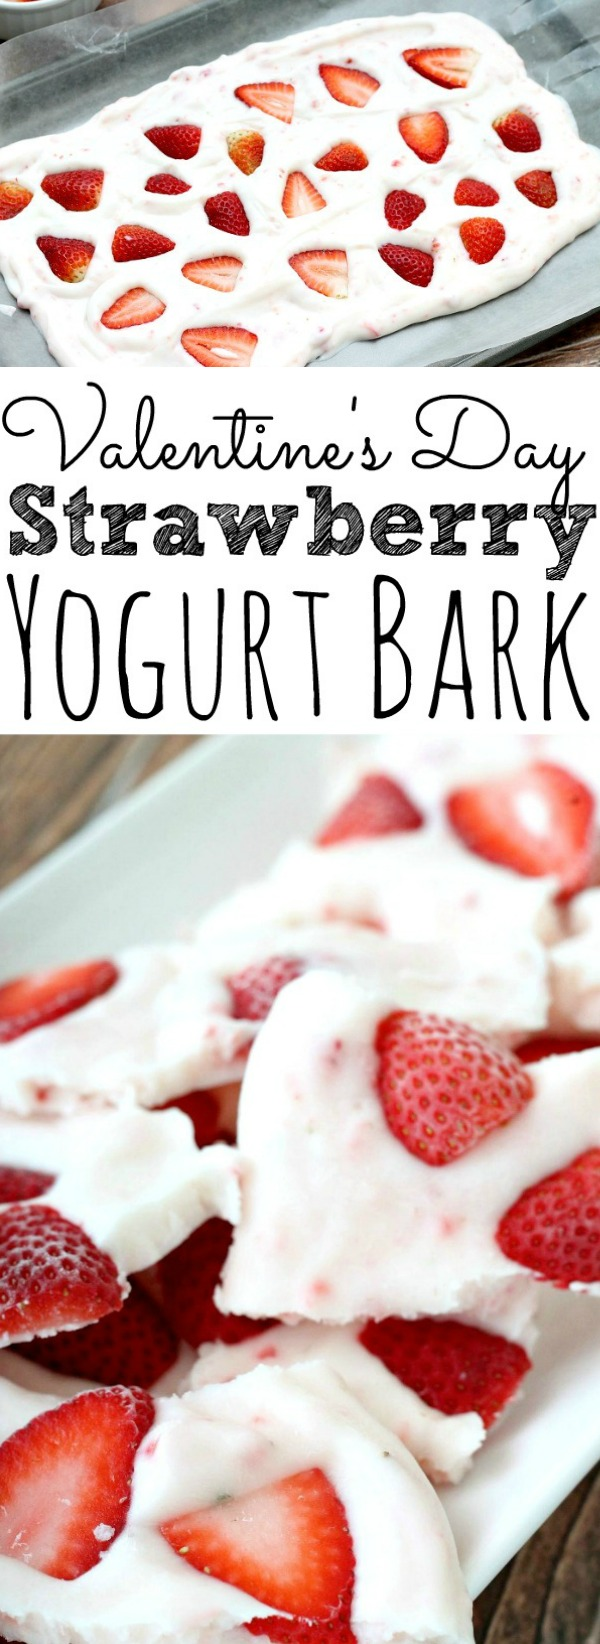 Valentine's Day Strawberry Yogurt Bark